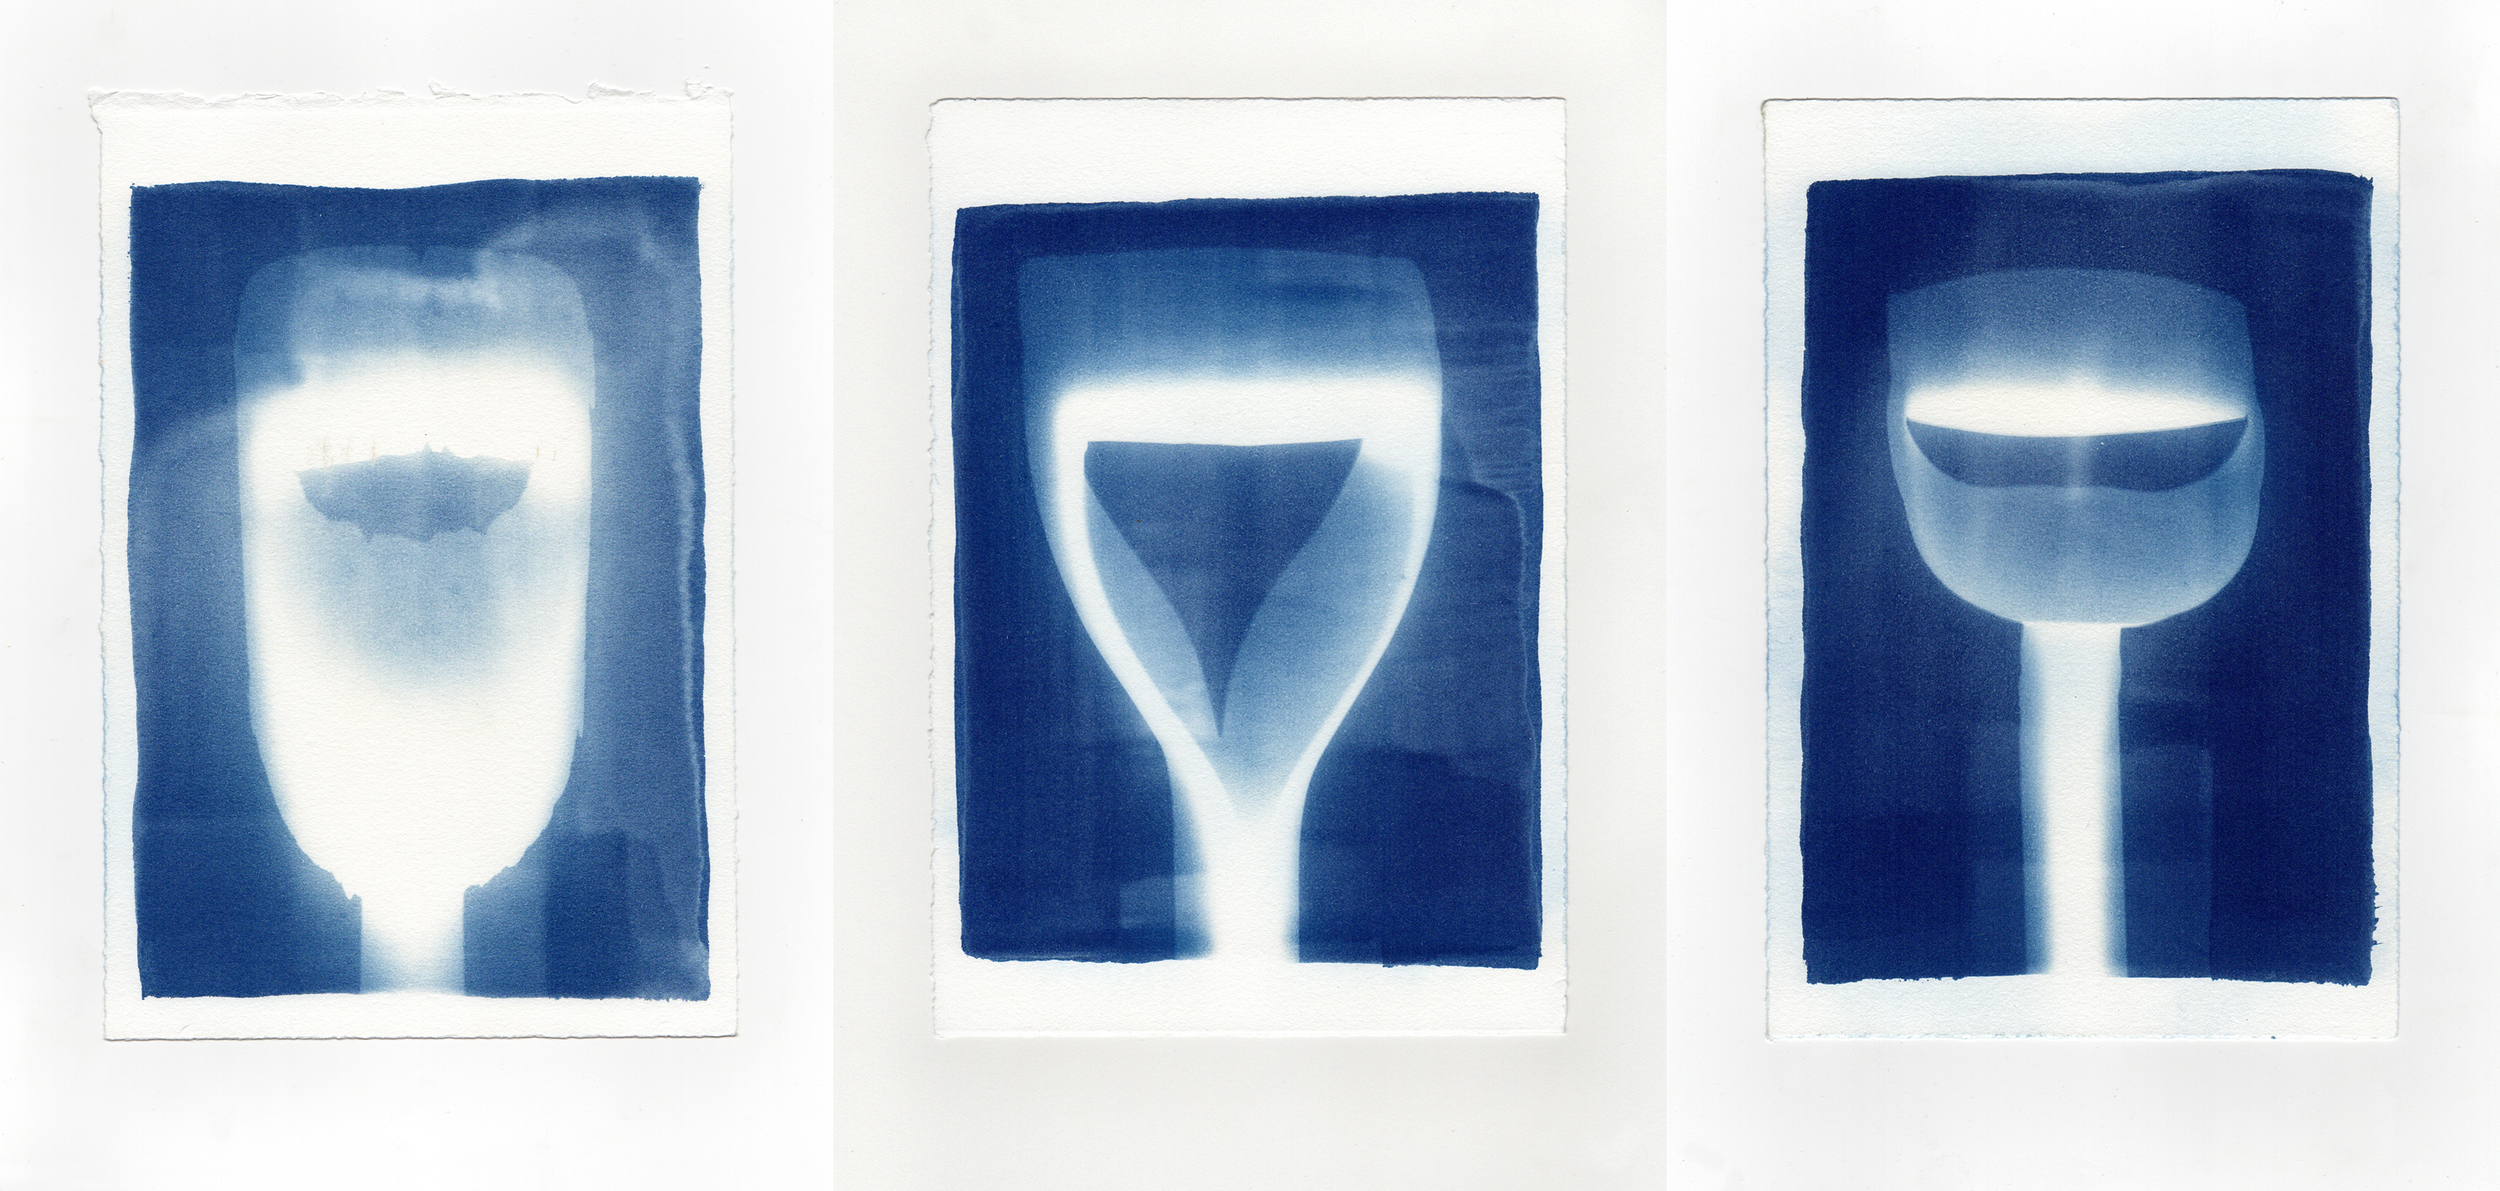 3D(s)  I  2014  I  cyanotype print on paper  I  7.5 x 11 each